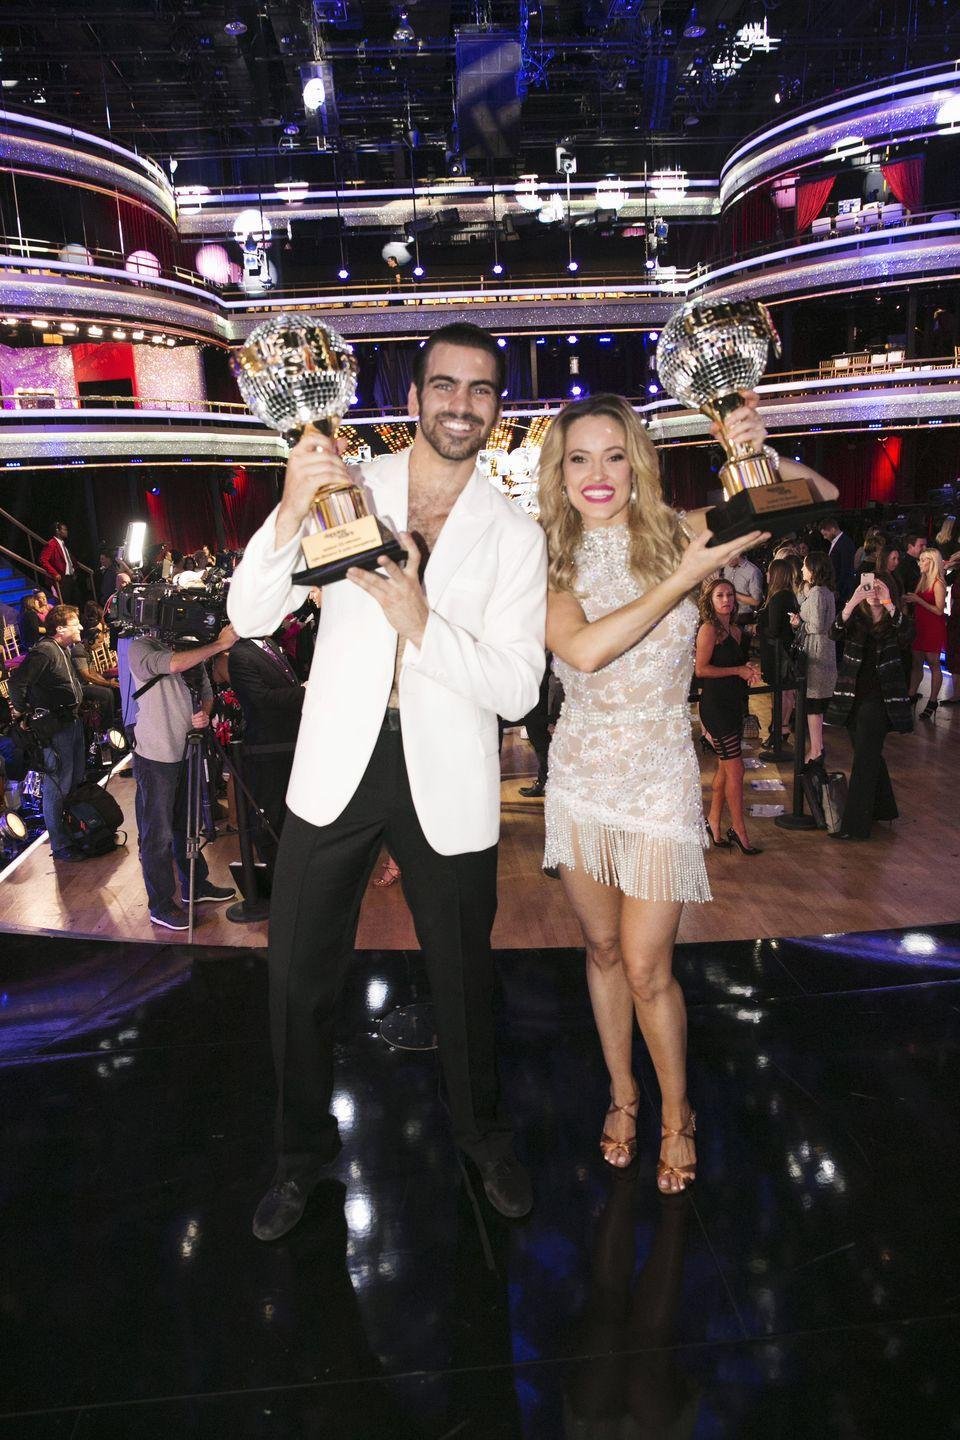 "<p>The model ended up in the hospital on the way to his Mirrorball Trophy win in season 22. Nyle had an accident during rehearsal that required stitches, <a href=""https://www.eonline.com/news/750681/why-nyle-dimarco-ended-up-in-the-hospital-before-his-breakout-dancing-with-the-stars-performance"" rel=""nofollow noopener"" target=""_blank"" data-ylk=""slk:E! News"" class=""link rapid-noclick-resp""><em>E! News</em> </a>reported. ""Actually, it's kind of funny because it was one of our best rehearsals to date and it was a great day,"" Nyle told the publication. ""And we wanted to do one last run—don't ever say that, don't ever say the last run because then I got elbowed in the eyebrow! Four stitches later, it healed beautifully though!"" </p>"